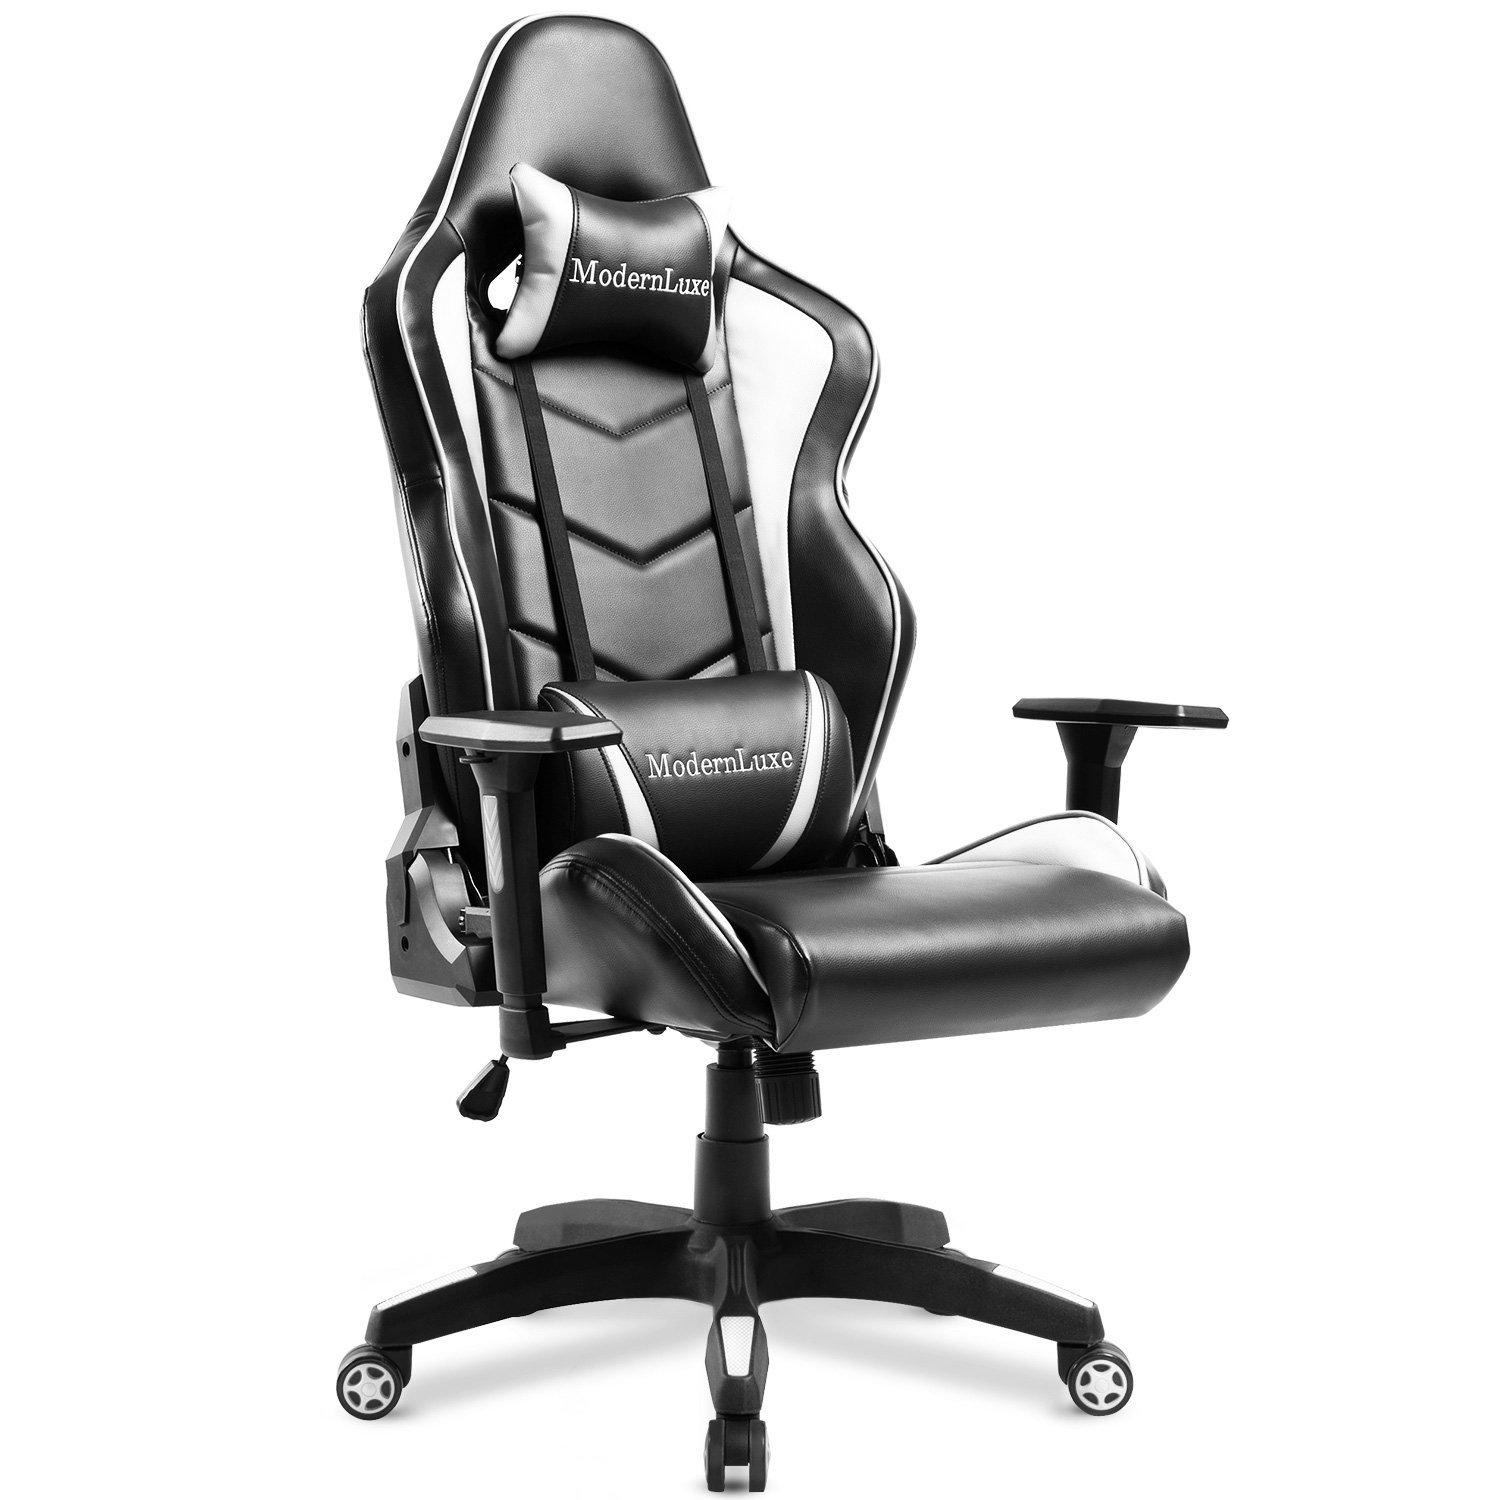 ModernLuxe Gaming Chair High Back Office Chair Lumbar Support Ergonomic  With Headrest   Walmart.com